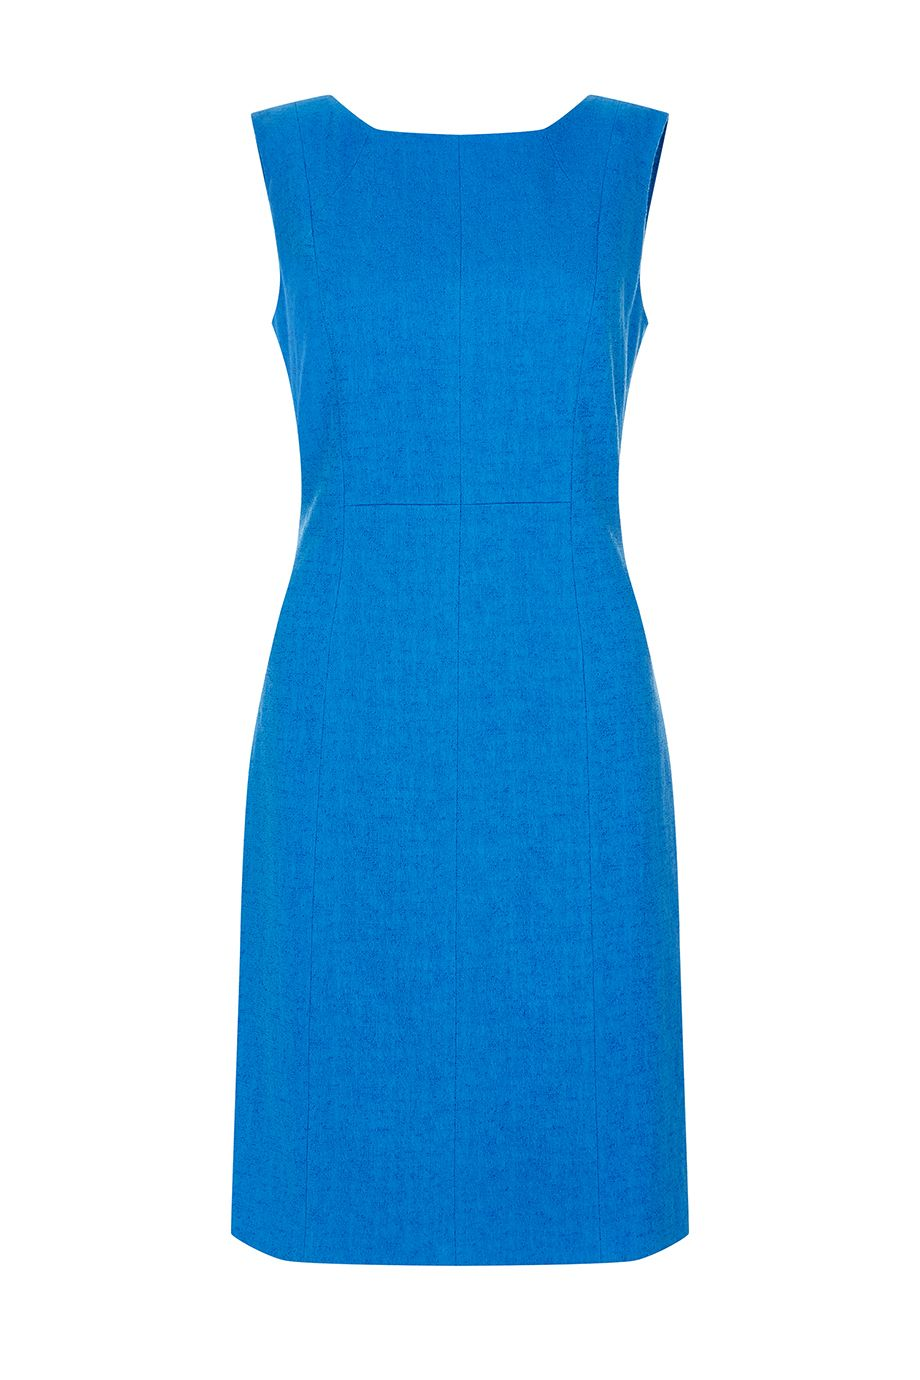 Fenn Wright Manson Skylar Dress, Blue